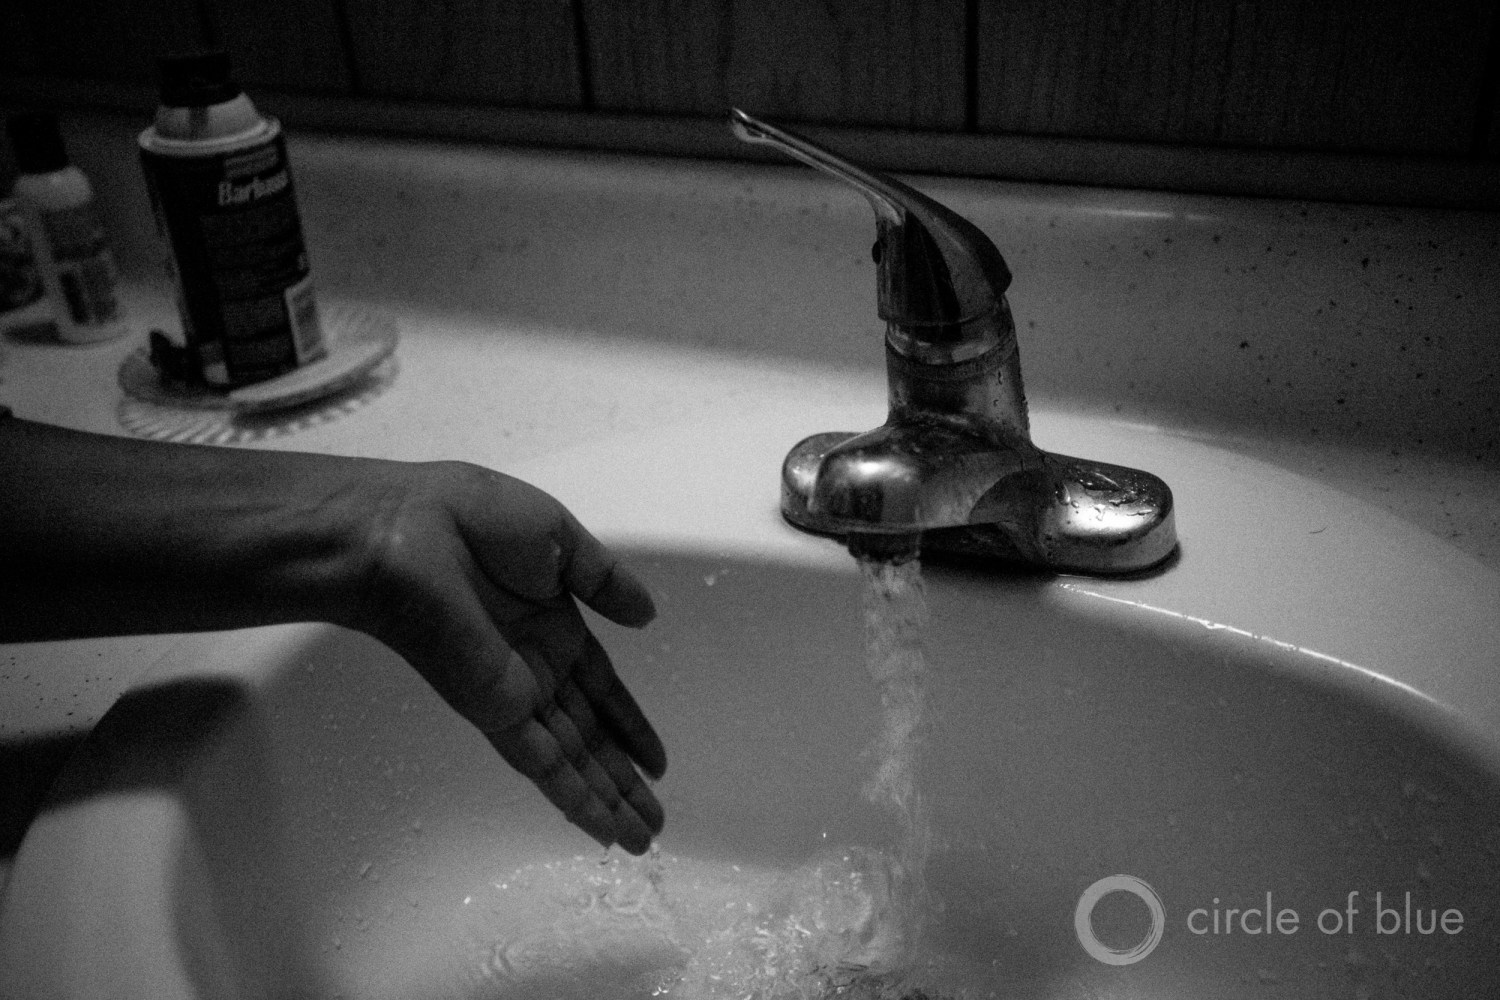 California officials are developing the nation's first state program to assist poor families who have trouble paying their water bill. Photo © Matt Black